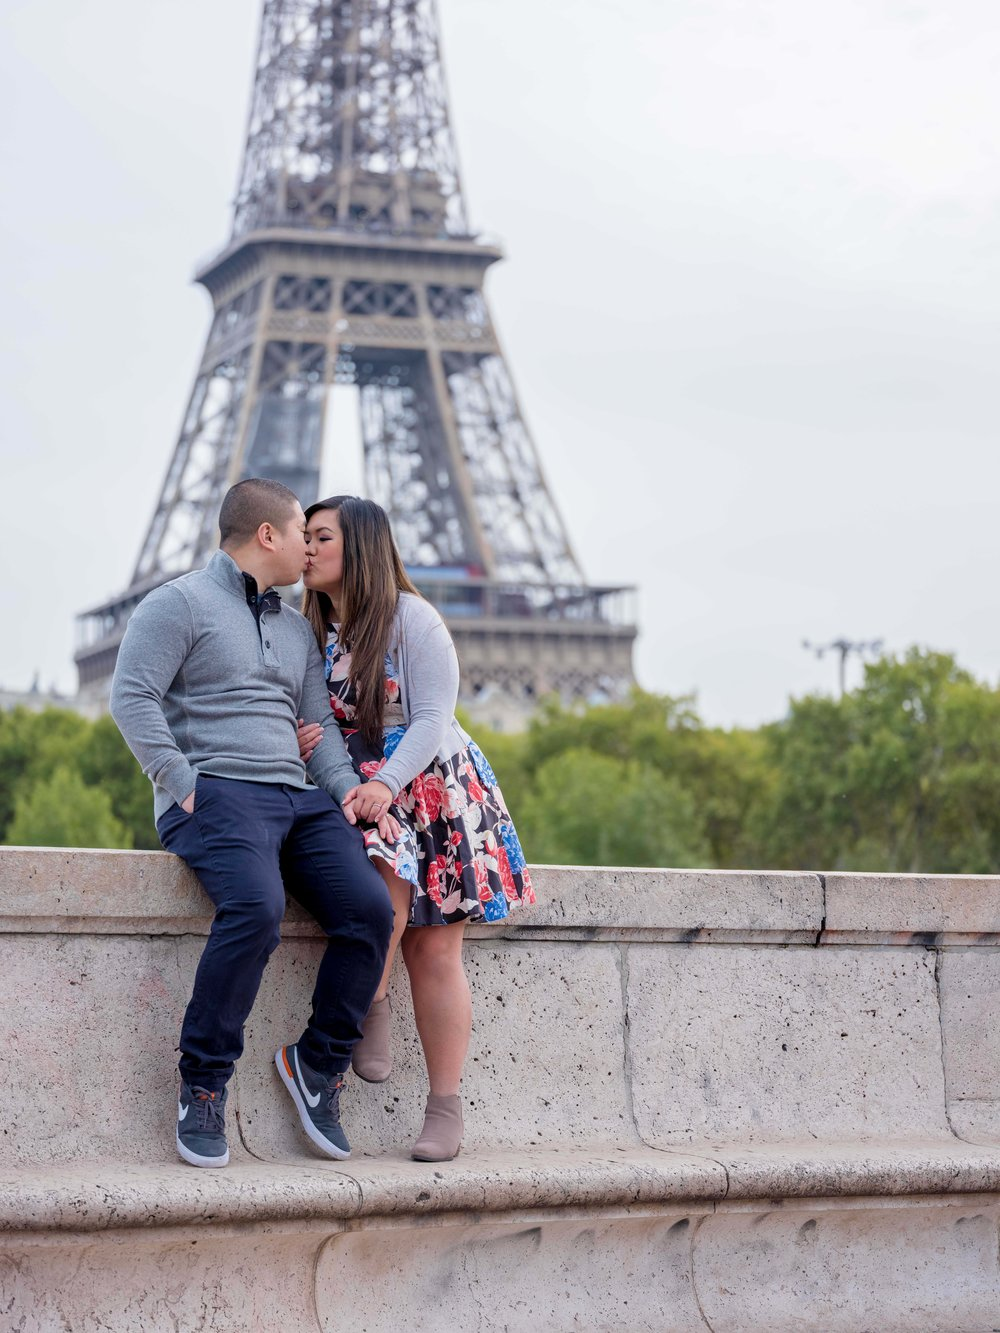 engaged couple in love at eiffel tower paris